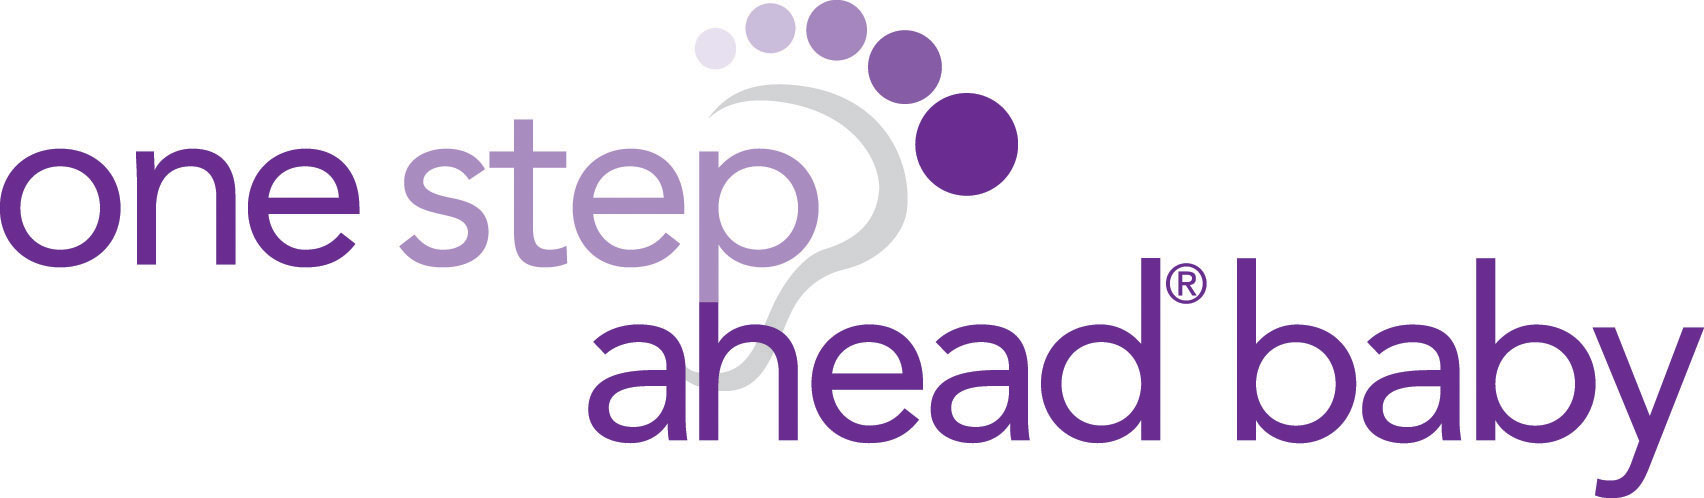 The One Step Ahead catalog and baby products stores have everything from educational toys and cute baby gifts to the safest toddler car seats - featured at henpoi.tk